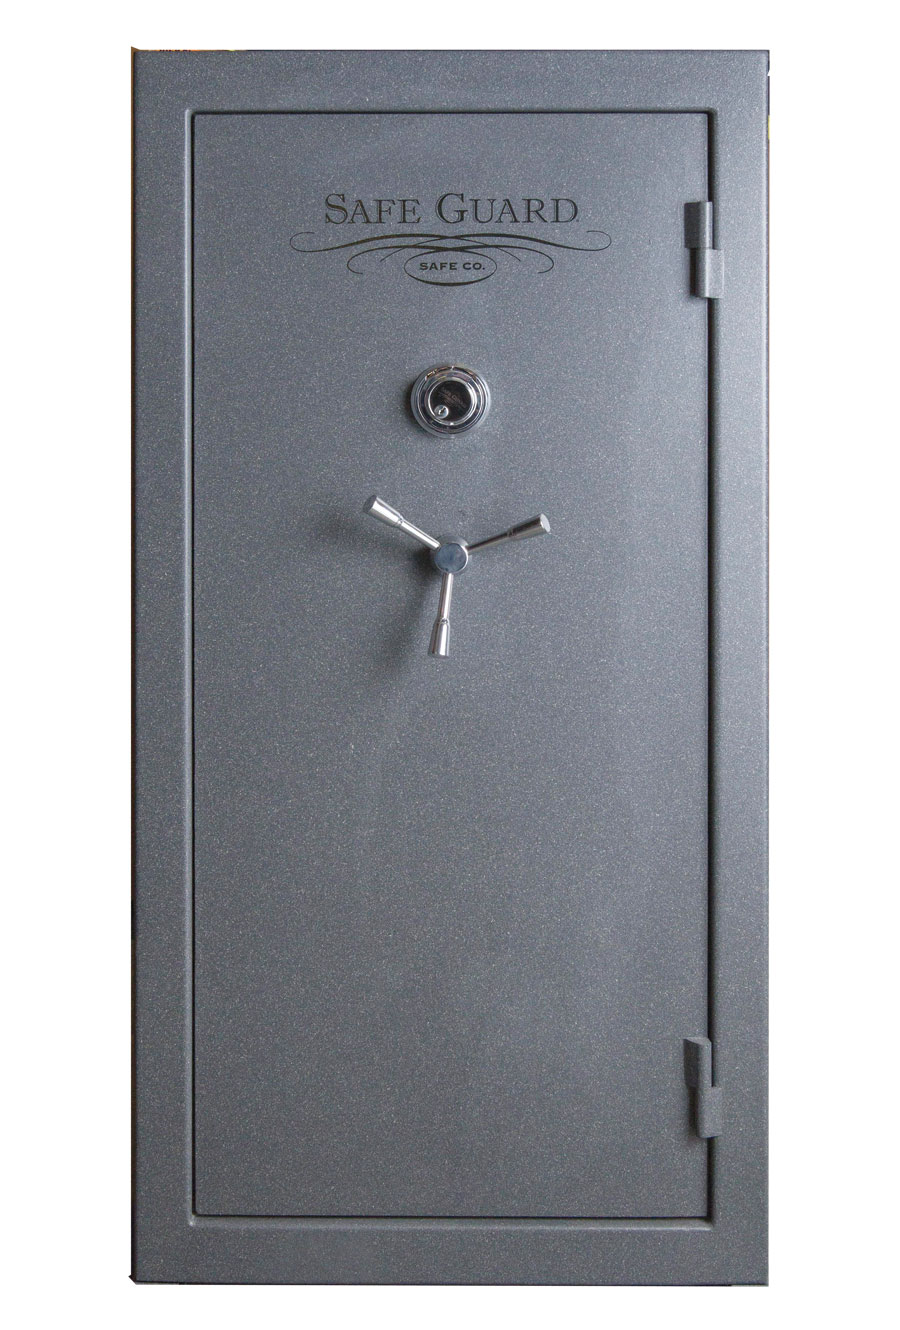 Safe Guard Gs 22 Standard Gun Safe The Safe House